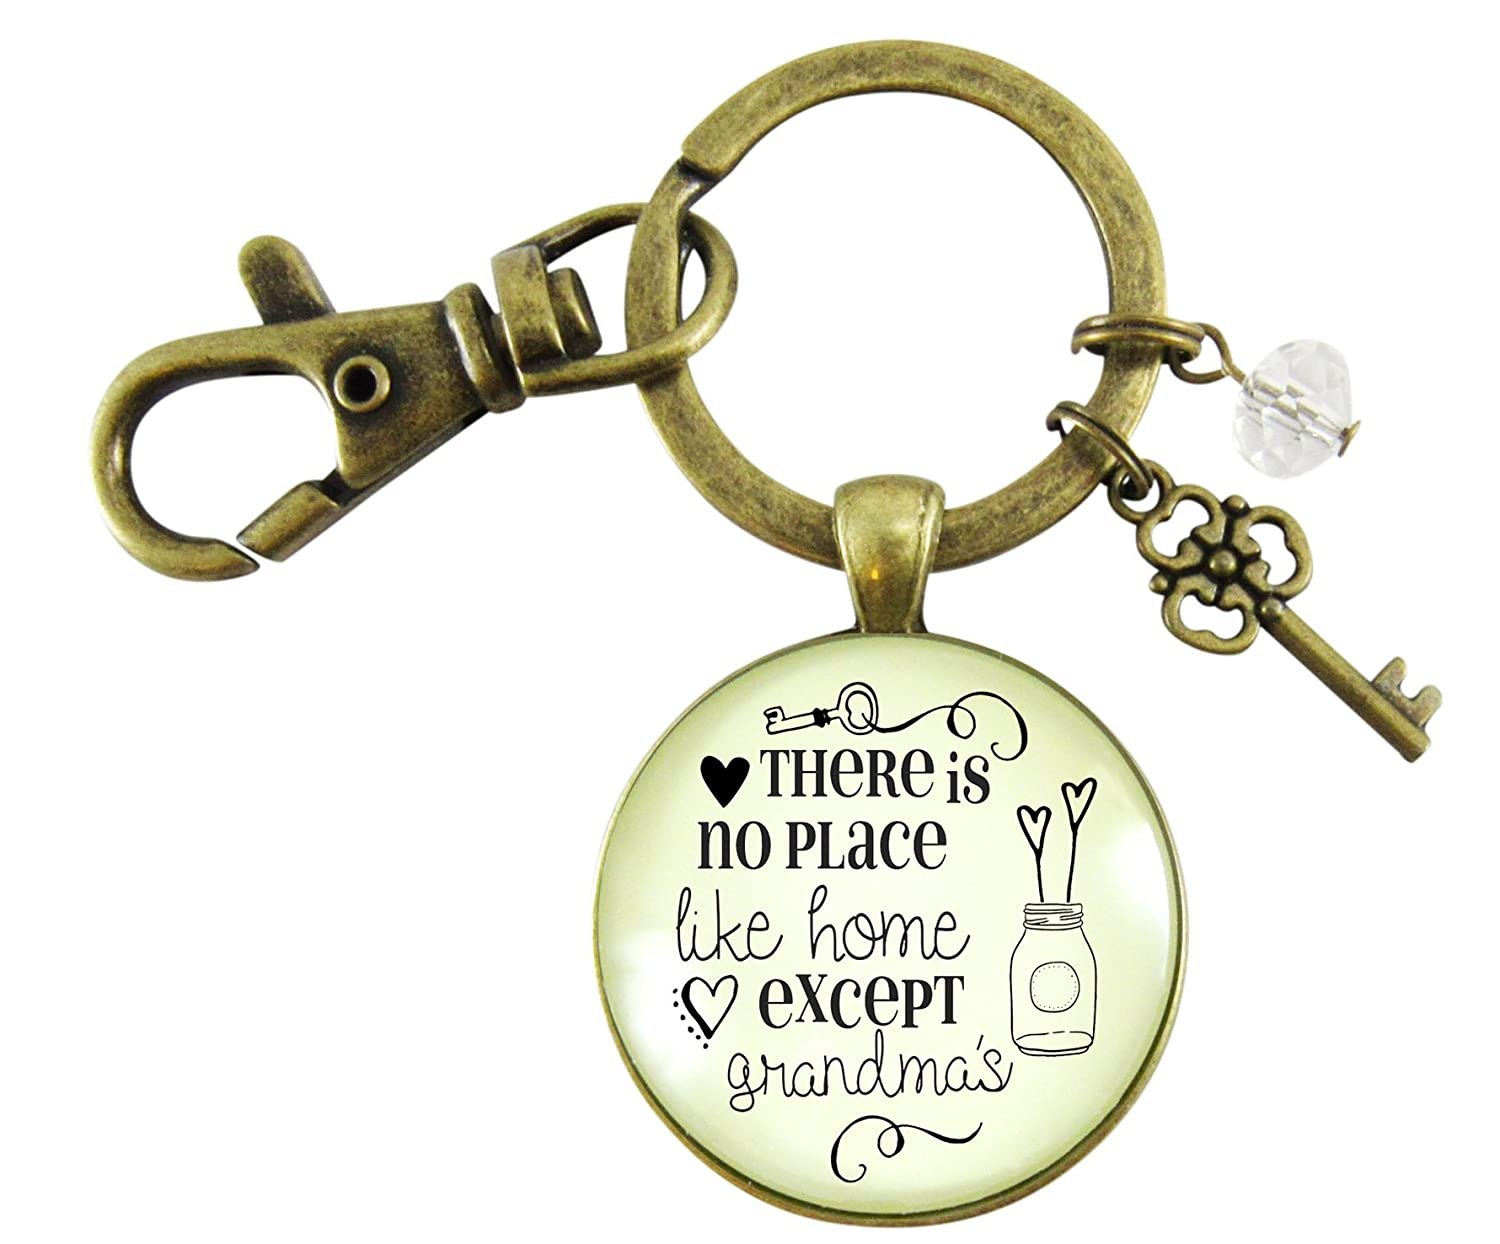 Grandmother Keychain There Is No Place Like Home Except Grandma's House Vintage Bronze Key Ring Gift Charm